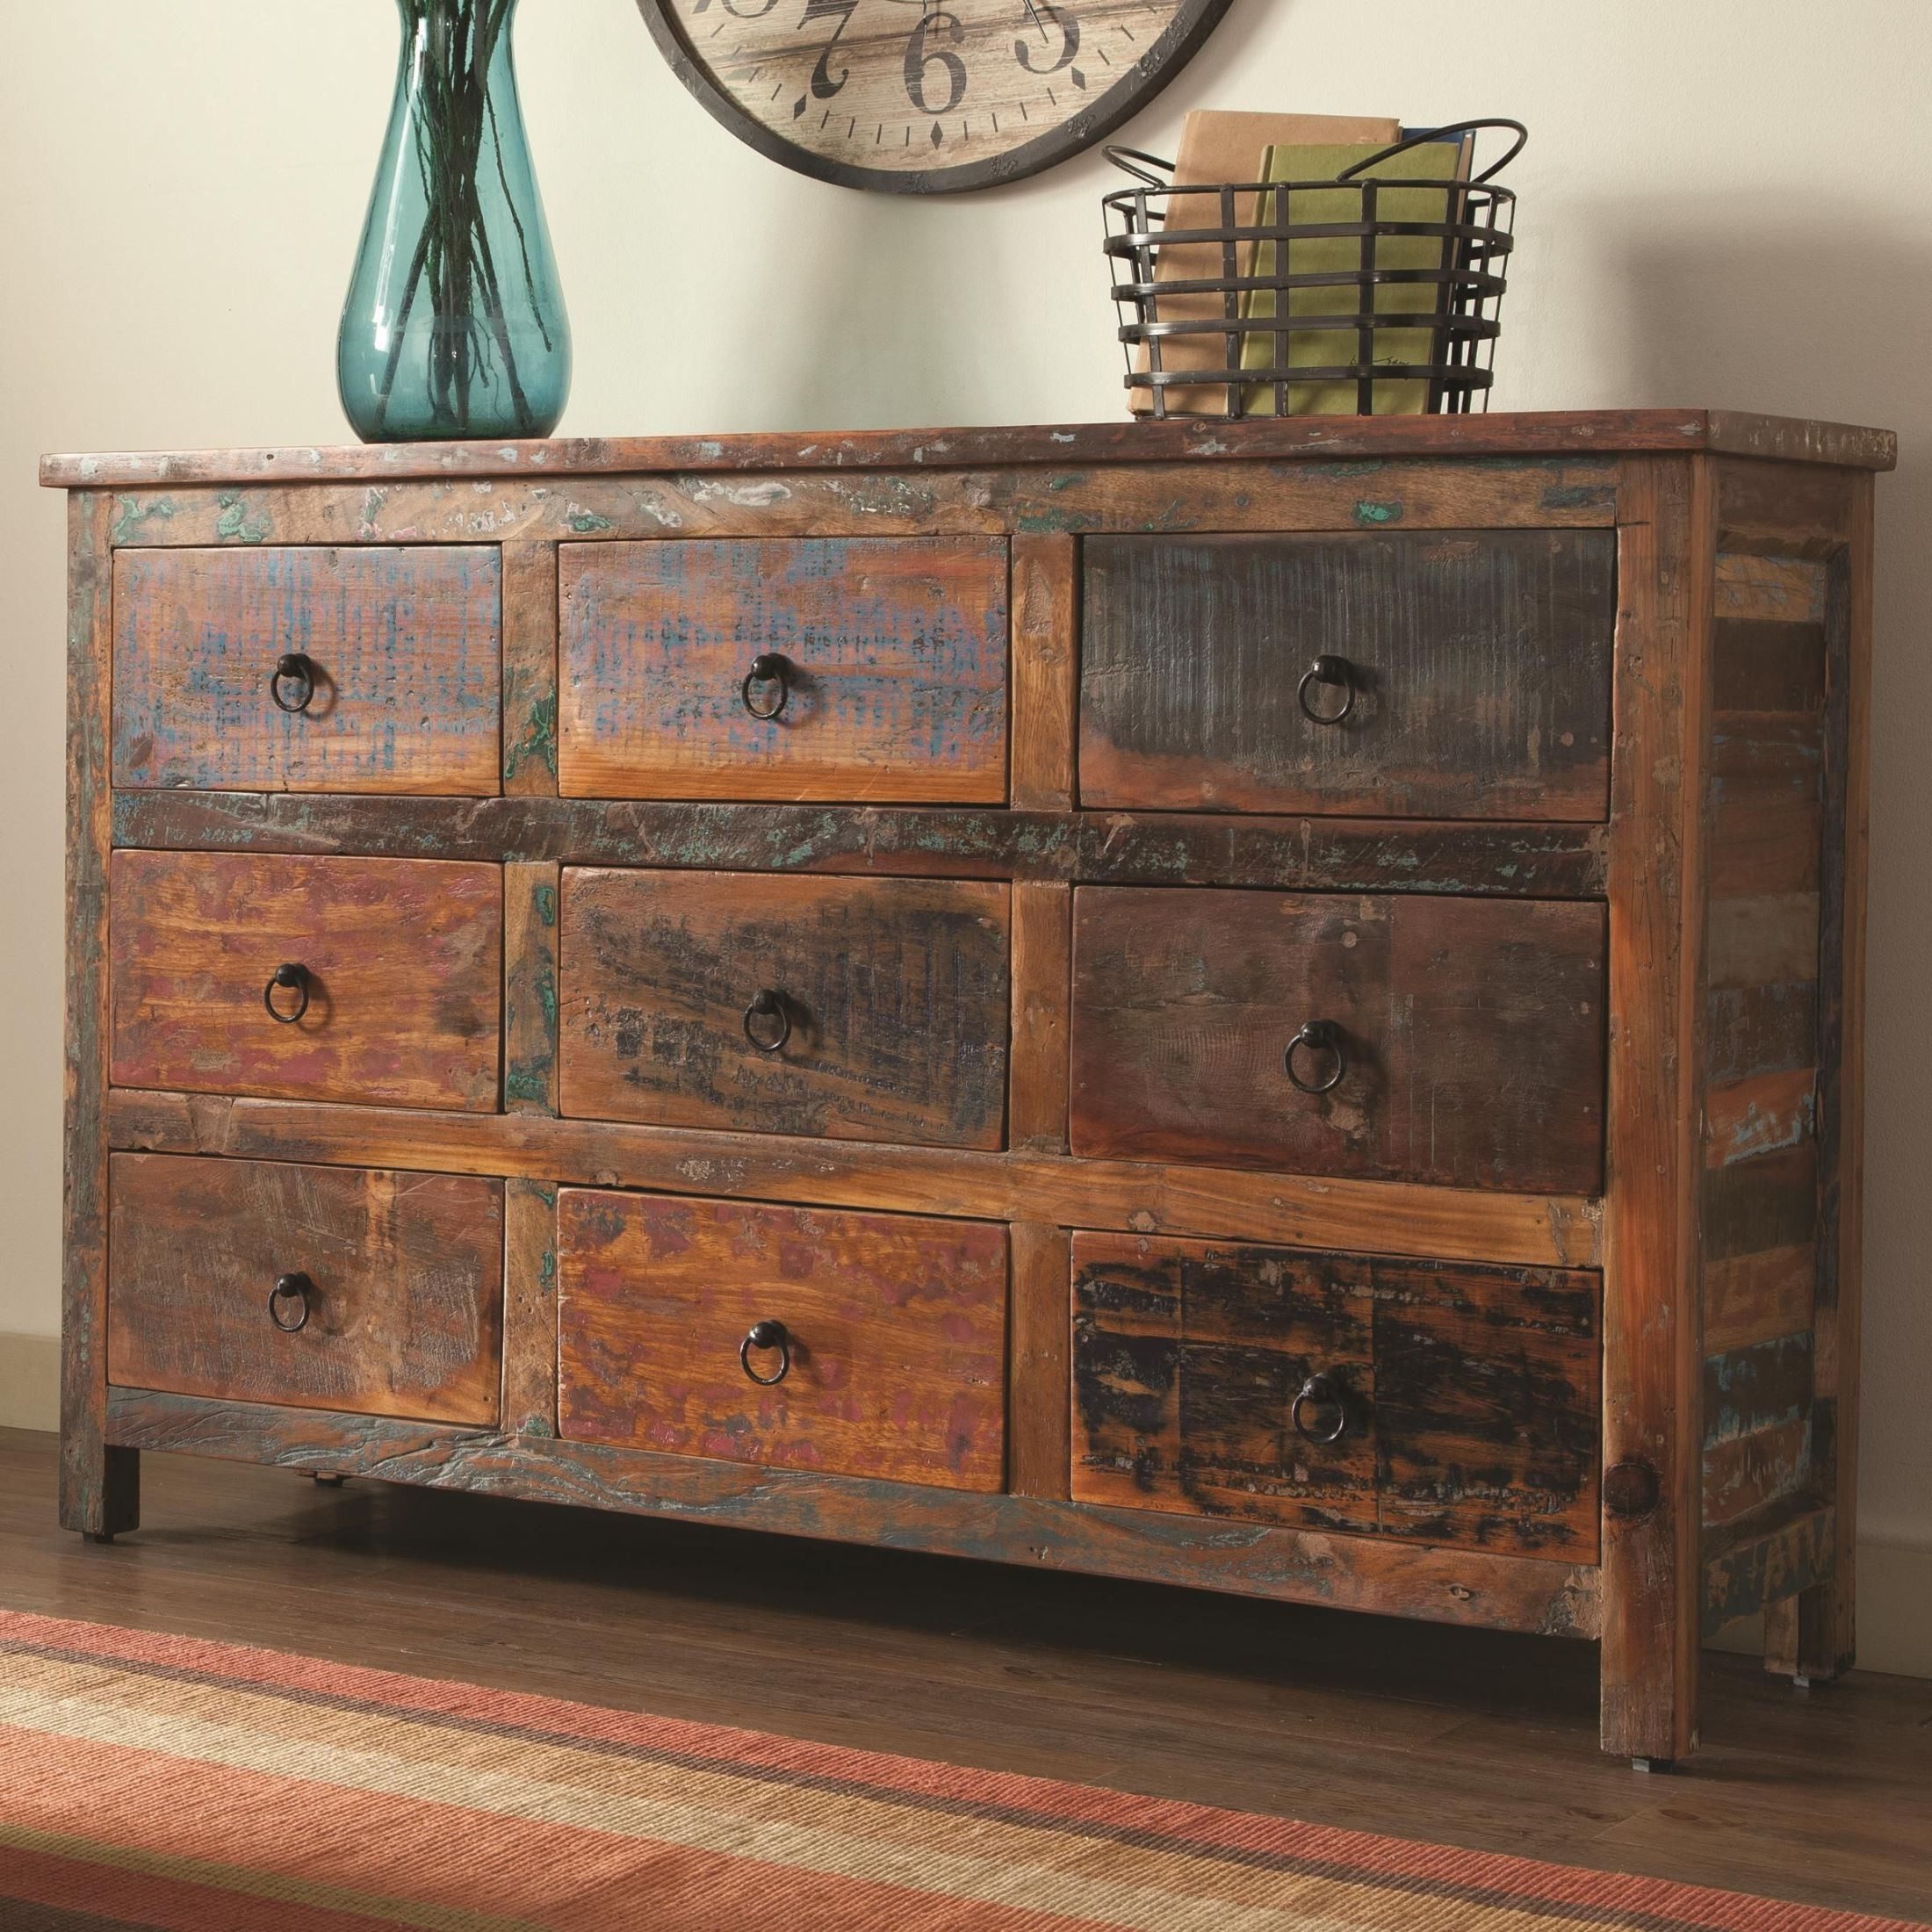 950365 9 Drawer Rustic Accent Cabinet from Coaster (950365